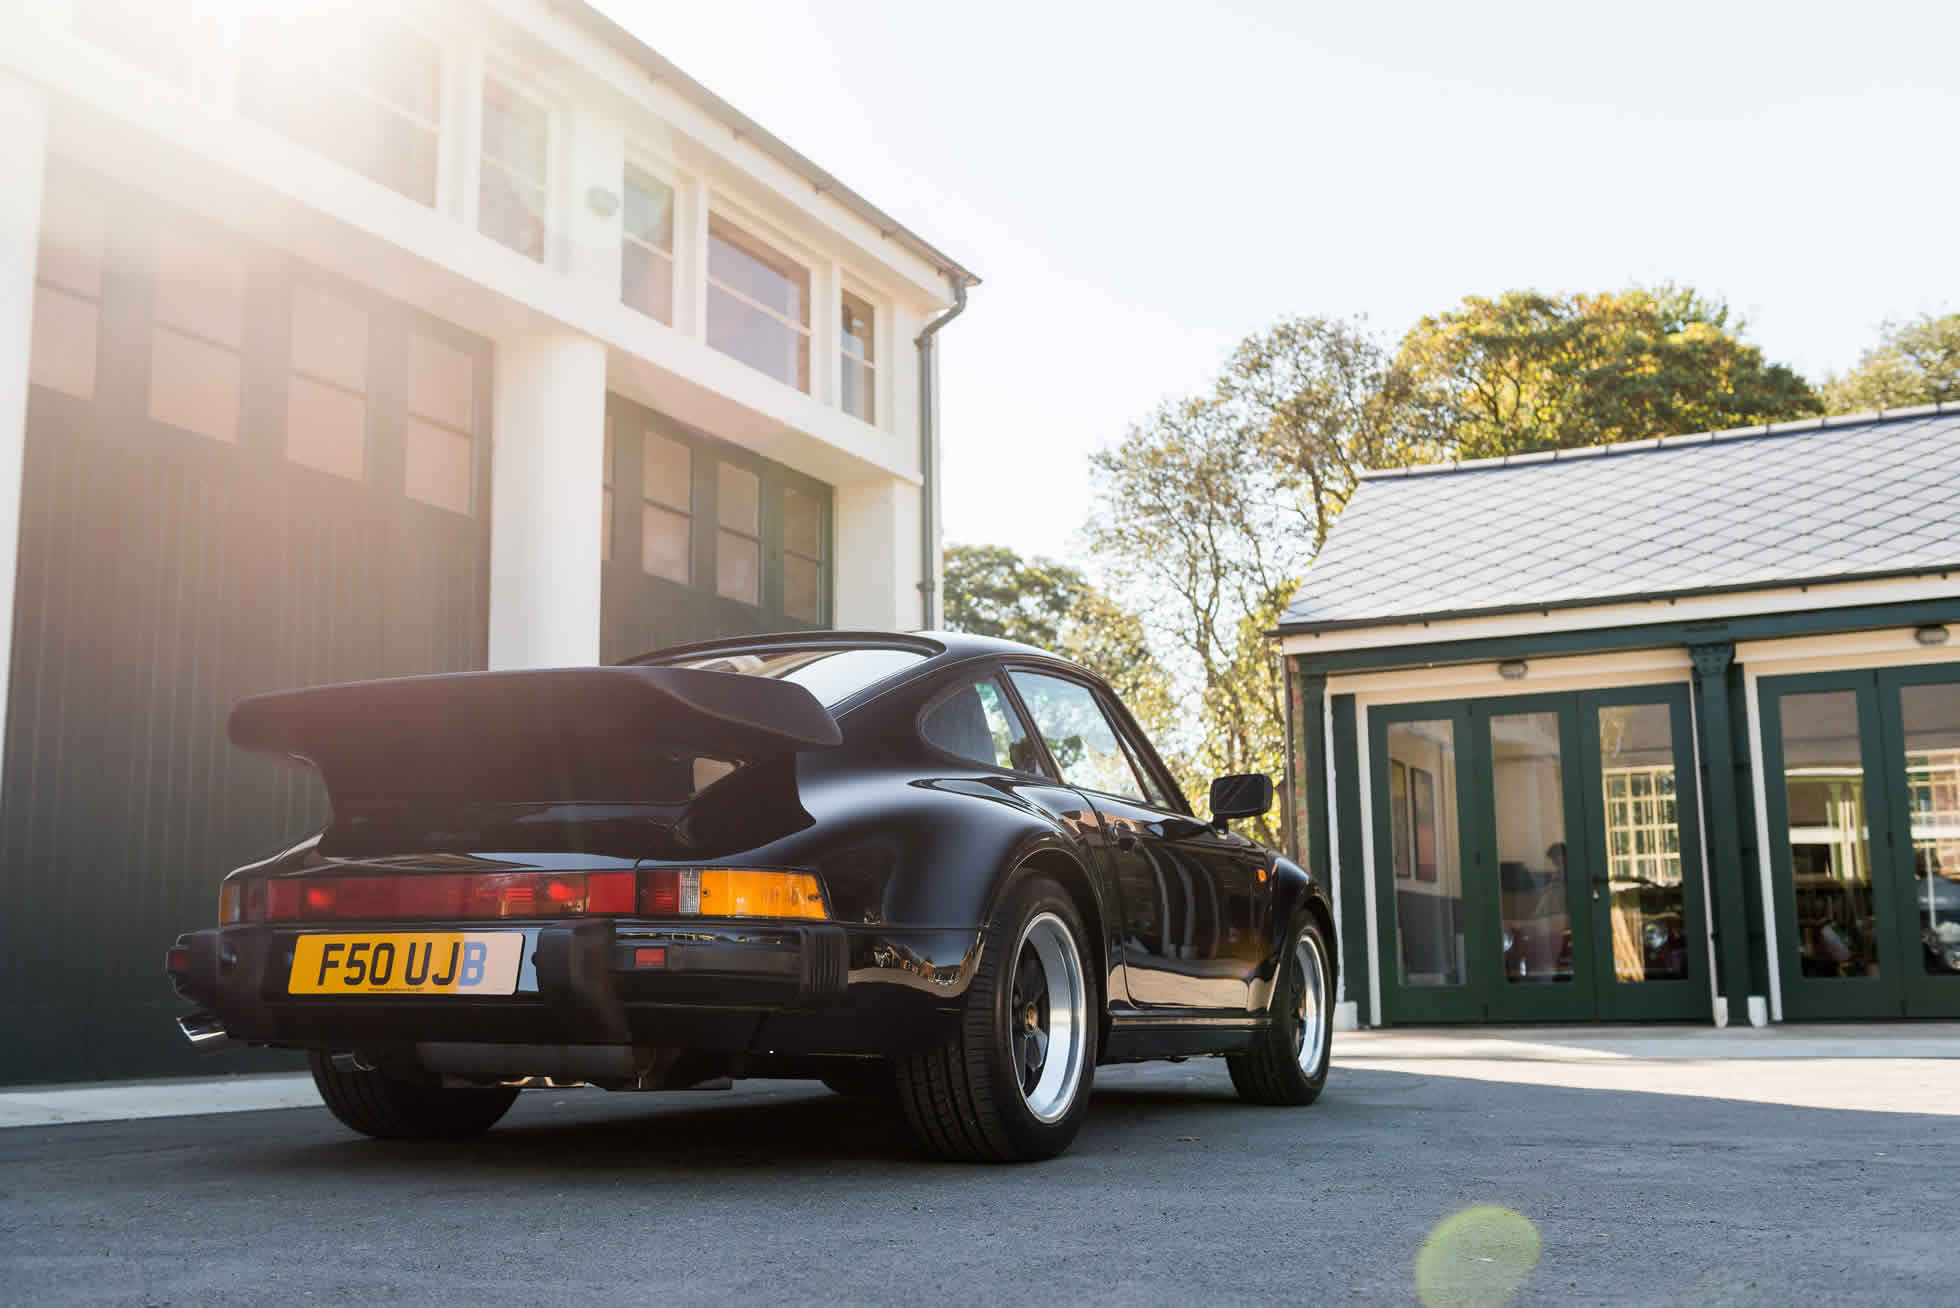 For Sale 1989 Porsche 930 3.3 Turbo rear view